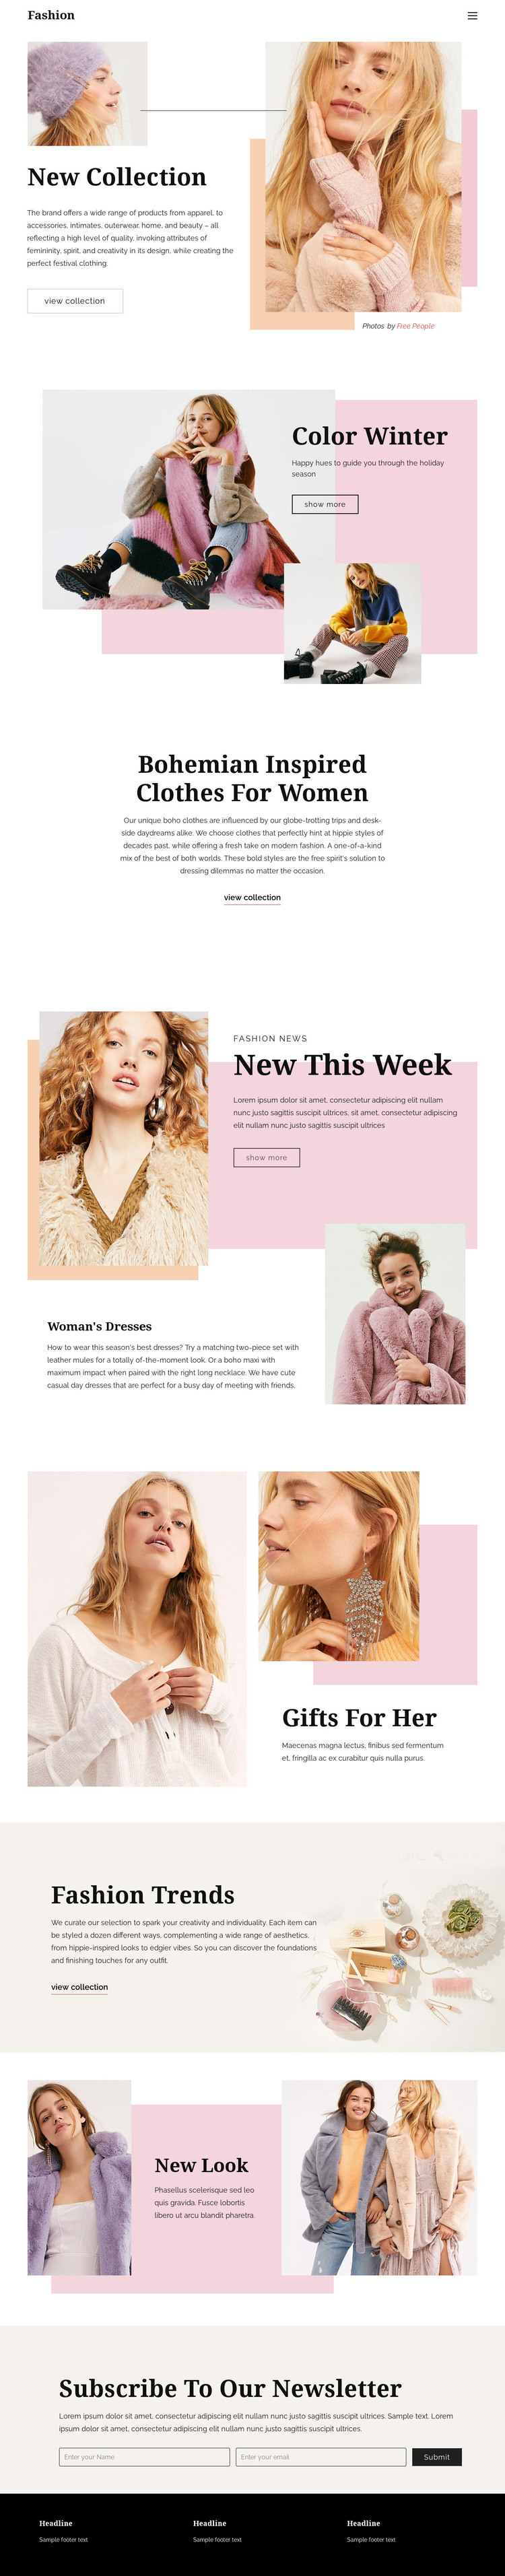 Fashion Page Design WordPress Theme